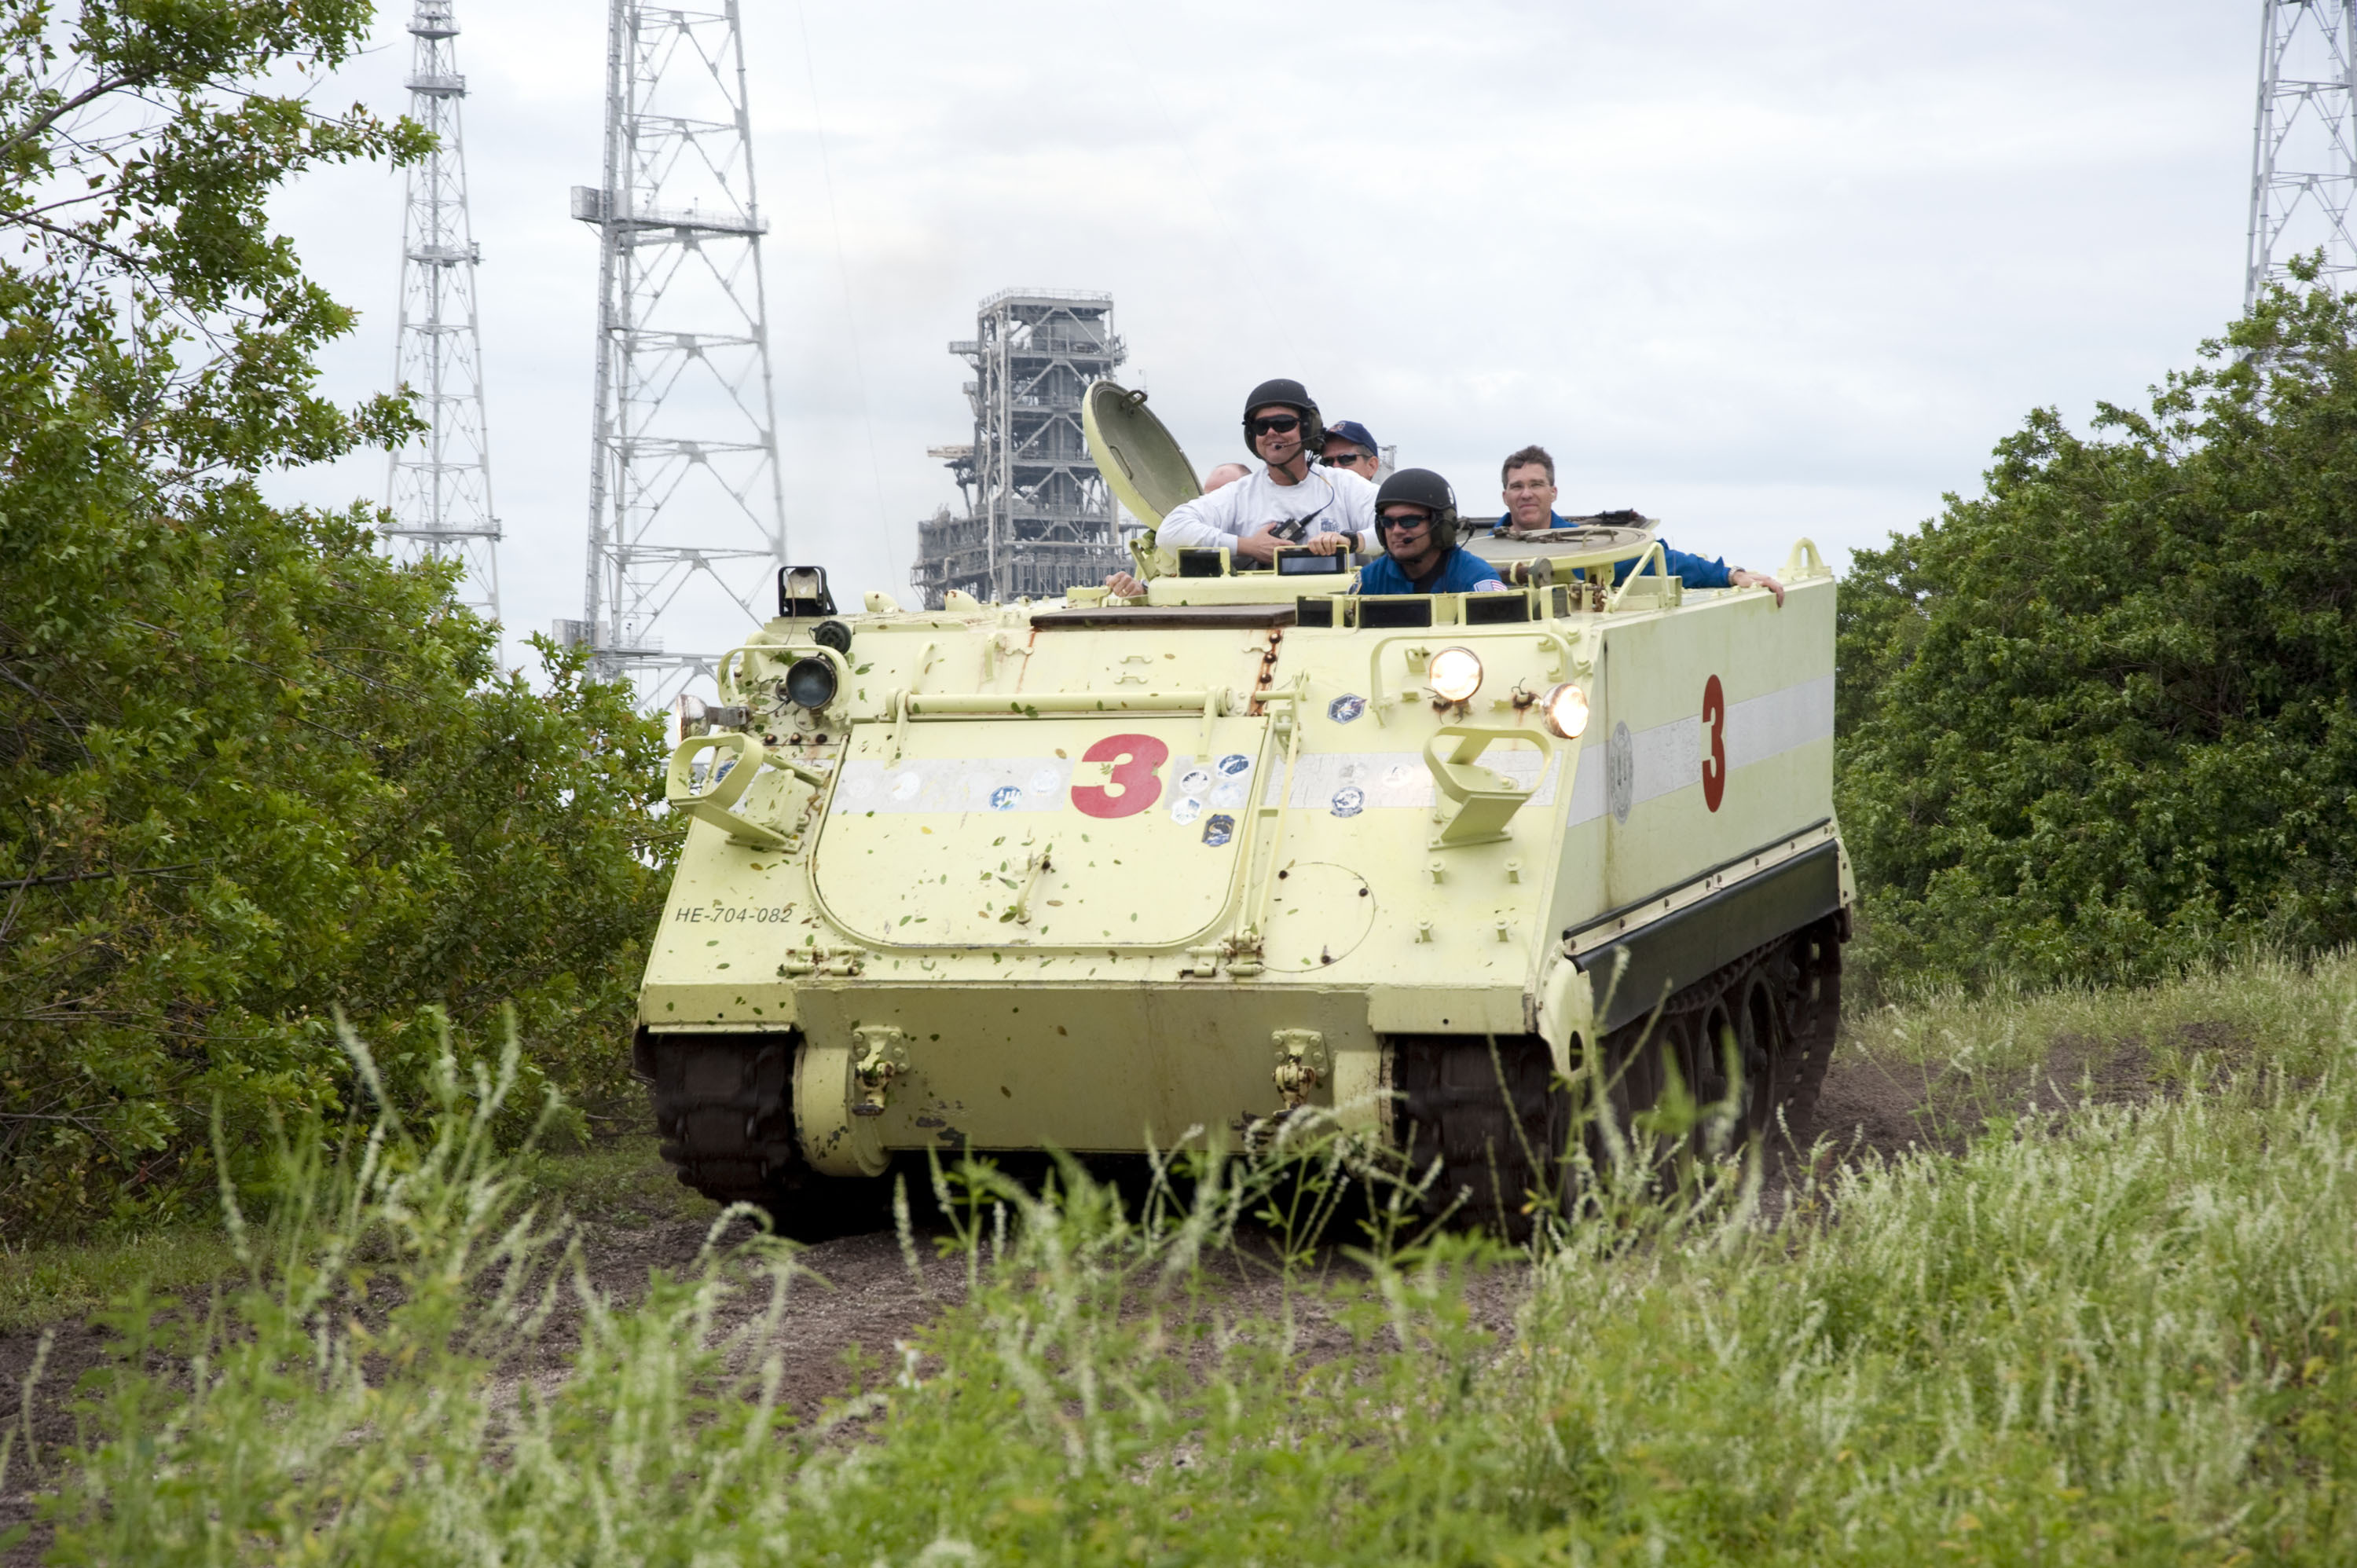 NASA - M113s Give Armored Ride to Firefighters